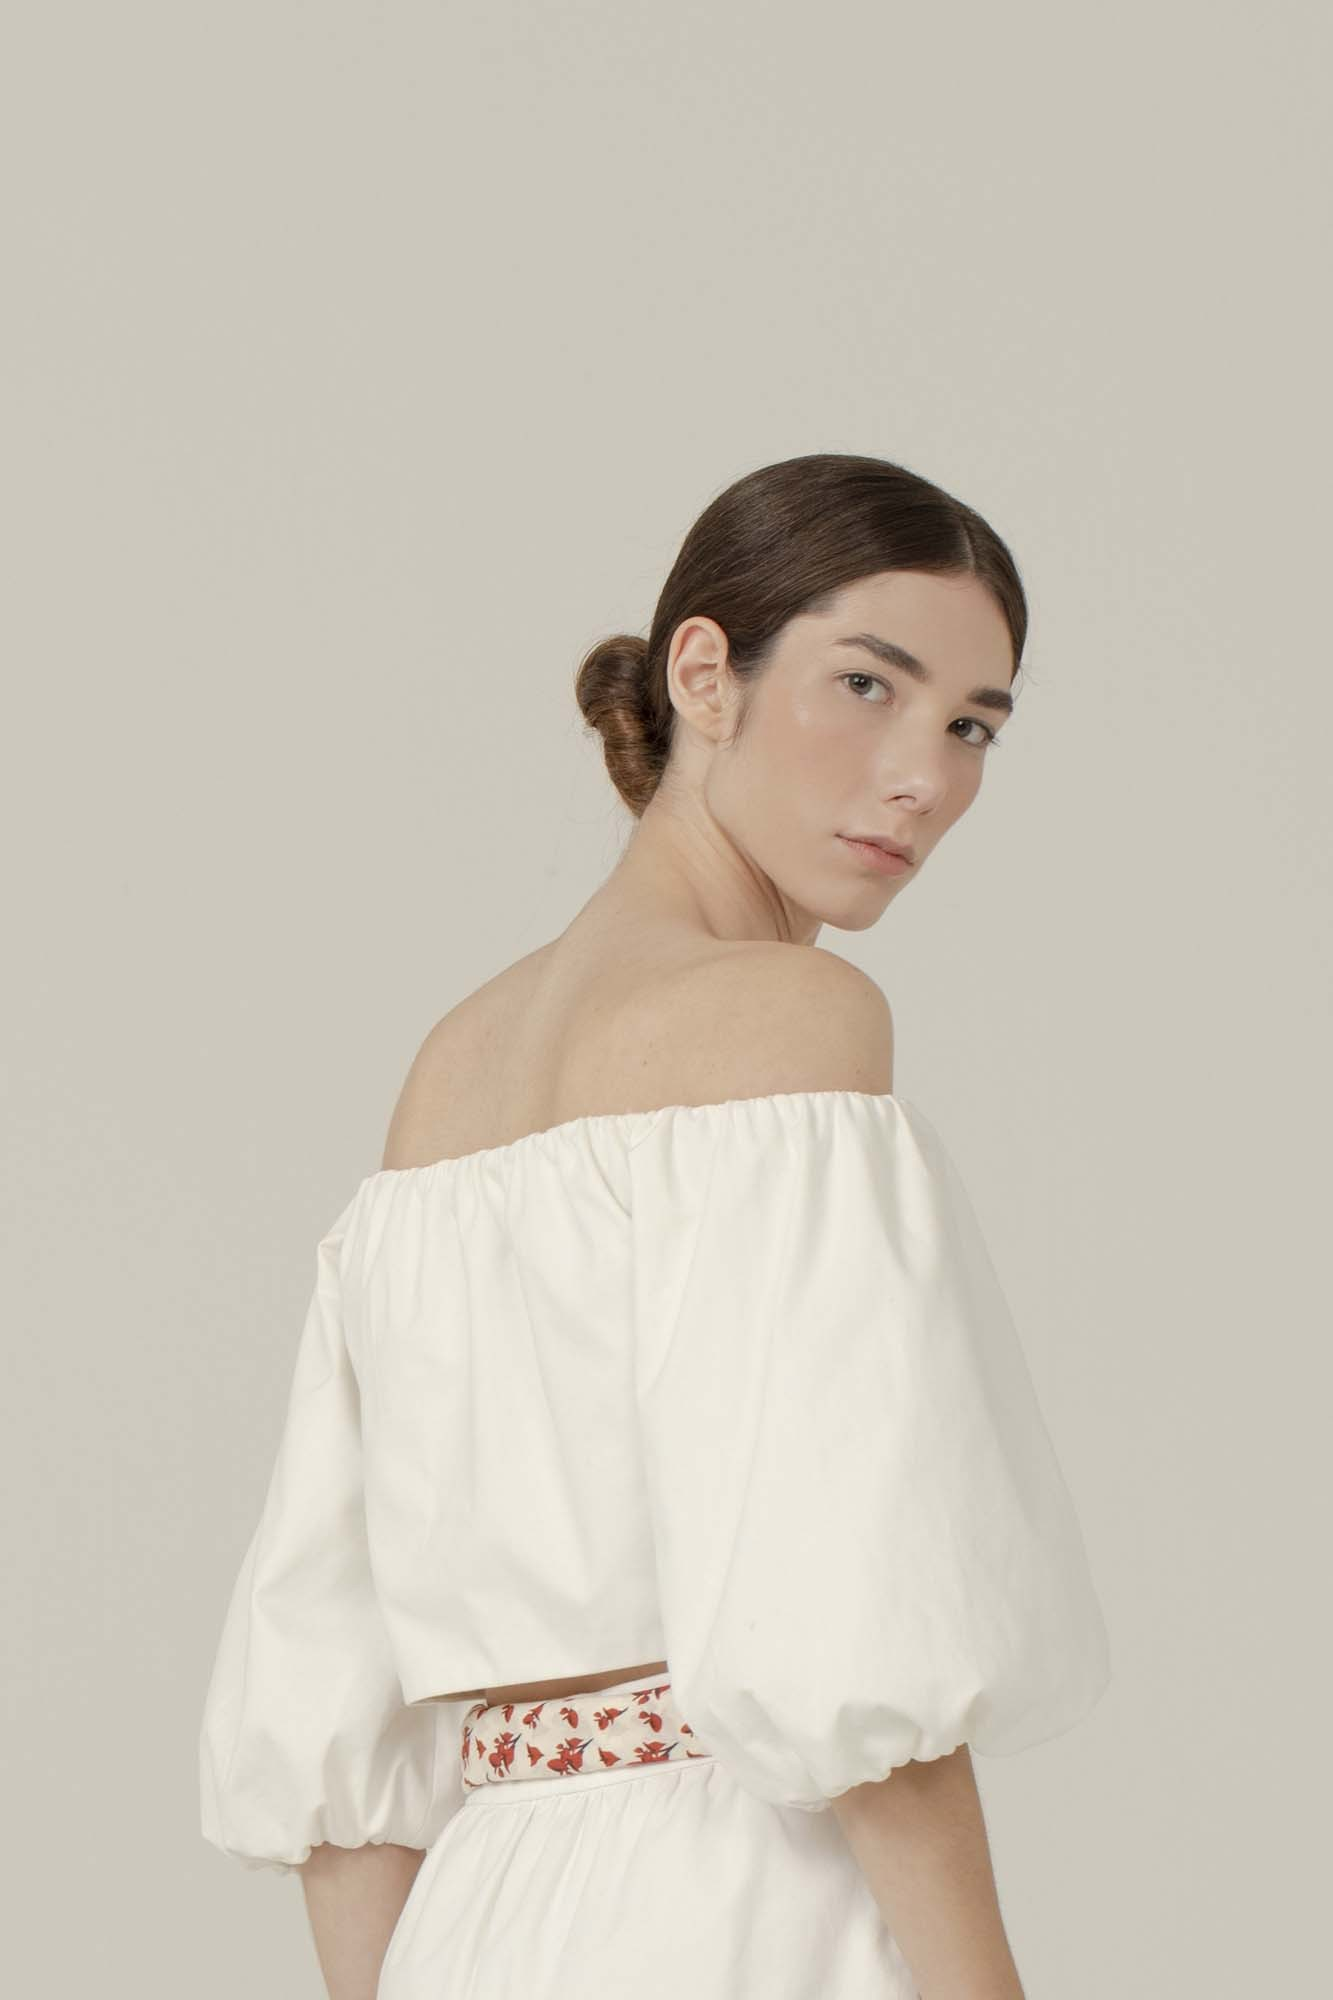 BLUSA CROPPED OMBRO A OMBRO OFF-WHITE